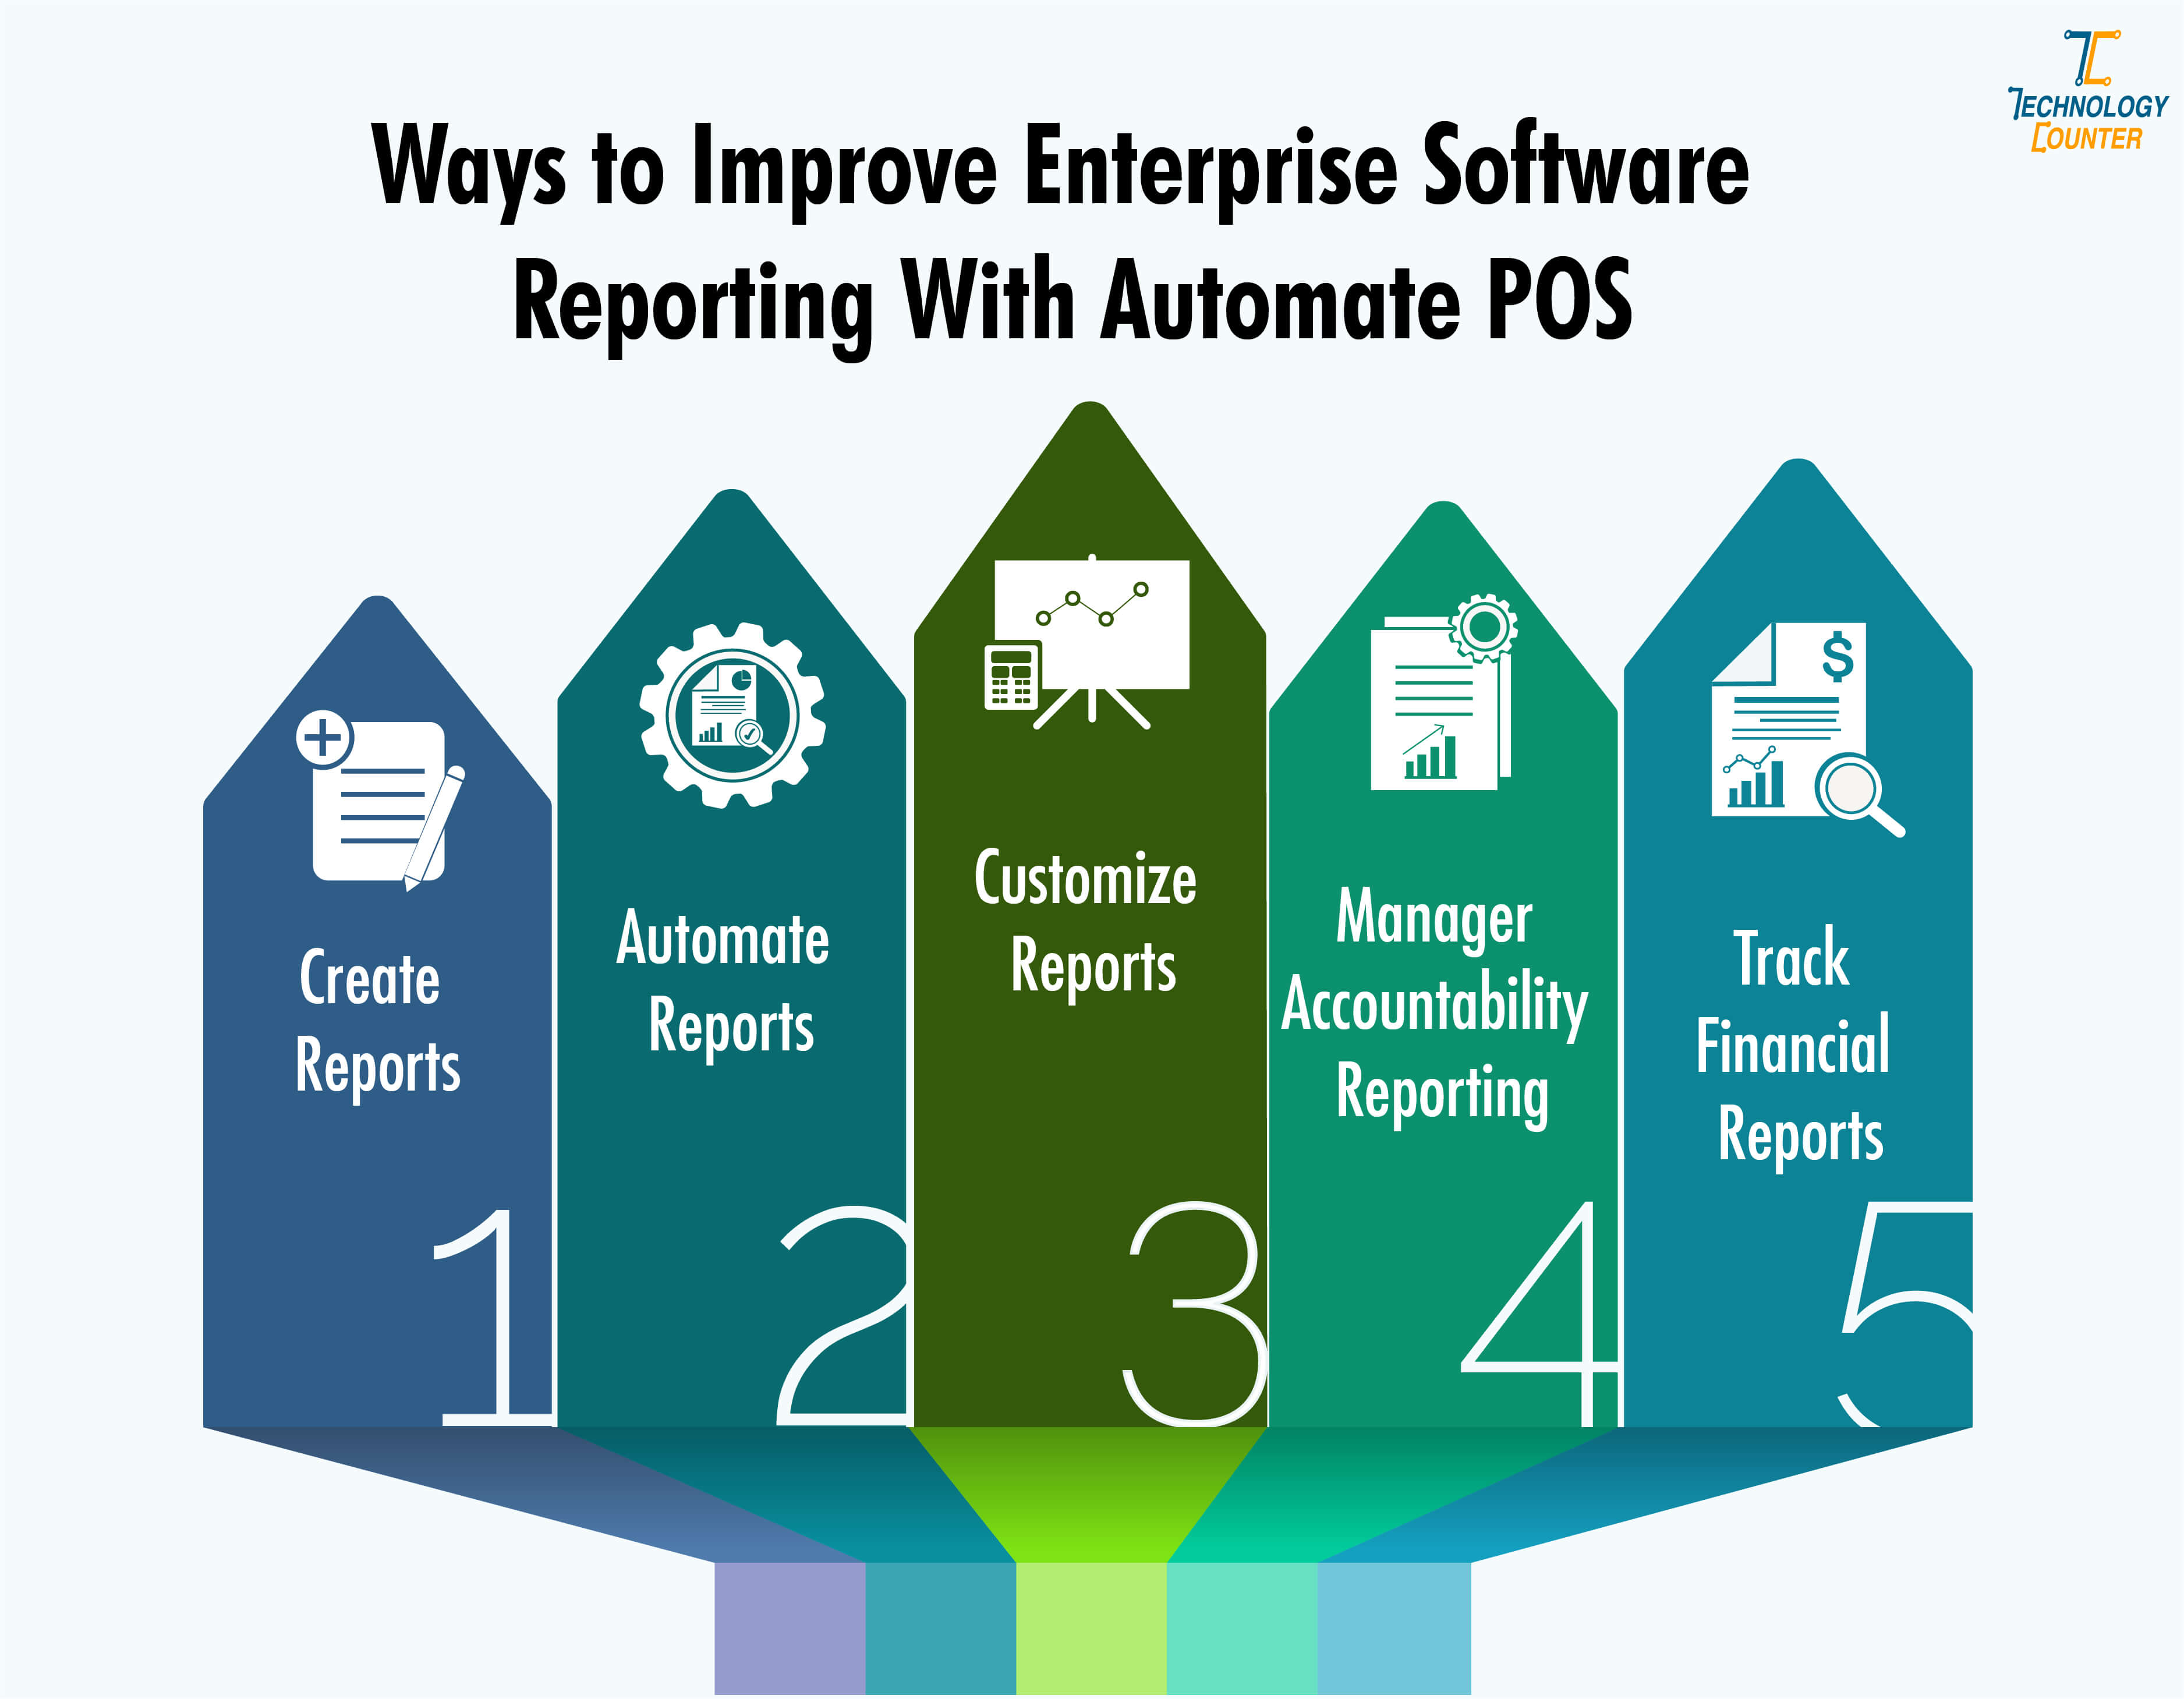 Ways to improve enterprise software reporting with automate POS